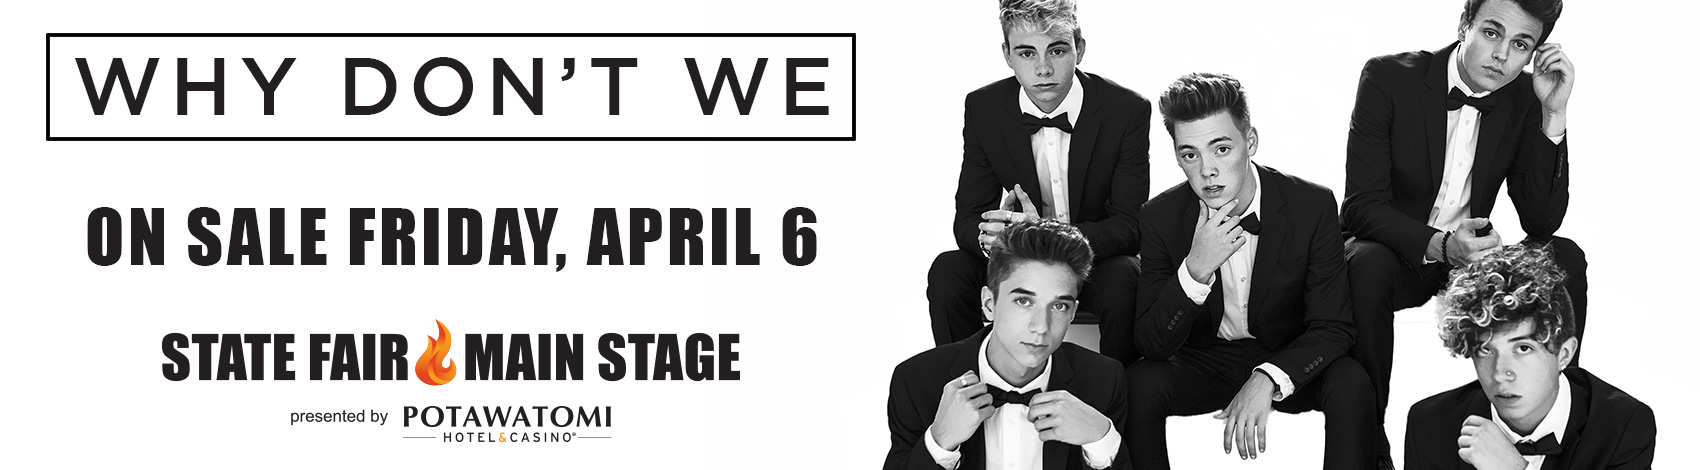 CONTEST: Why Don't We at the WI State Fair